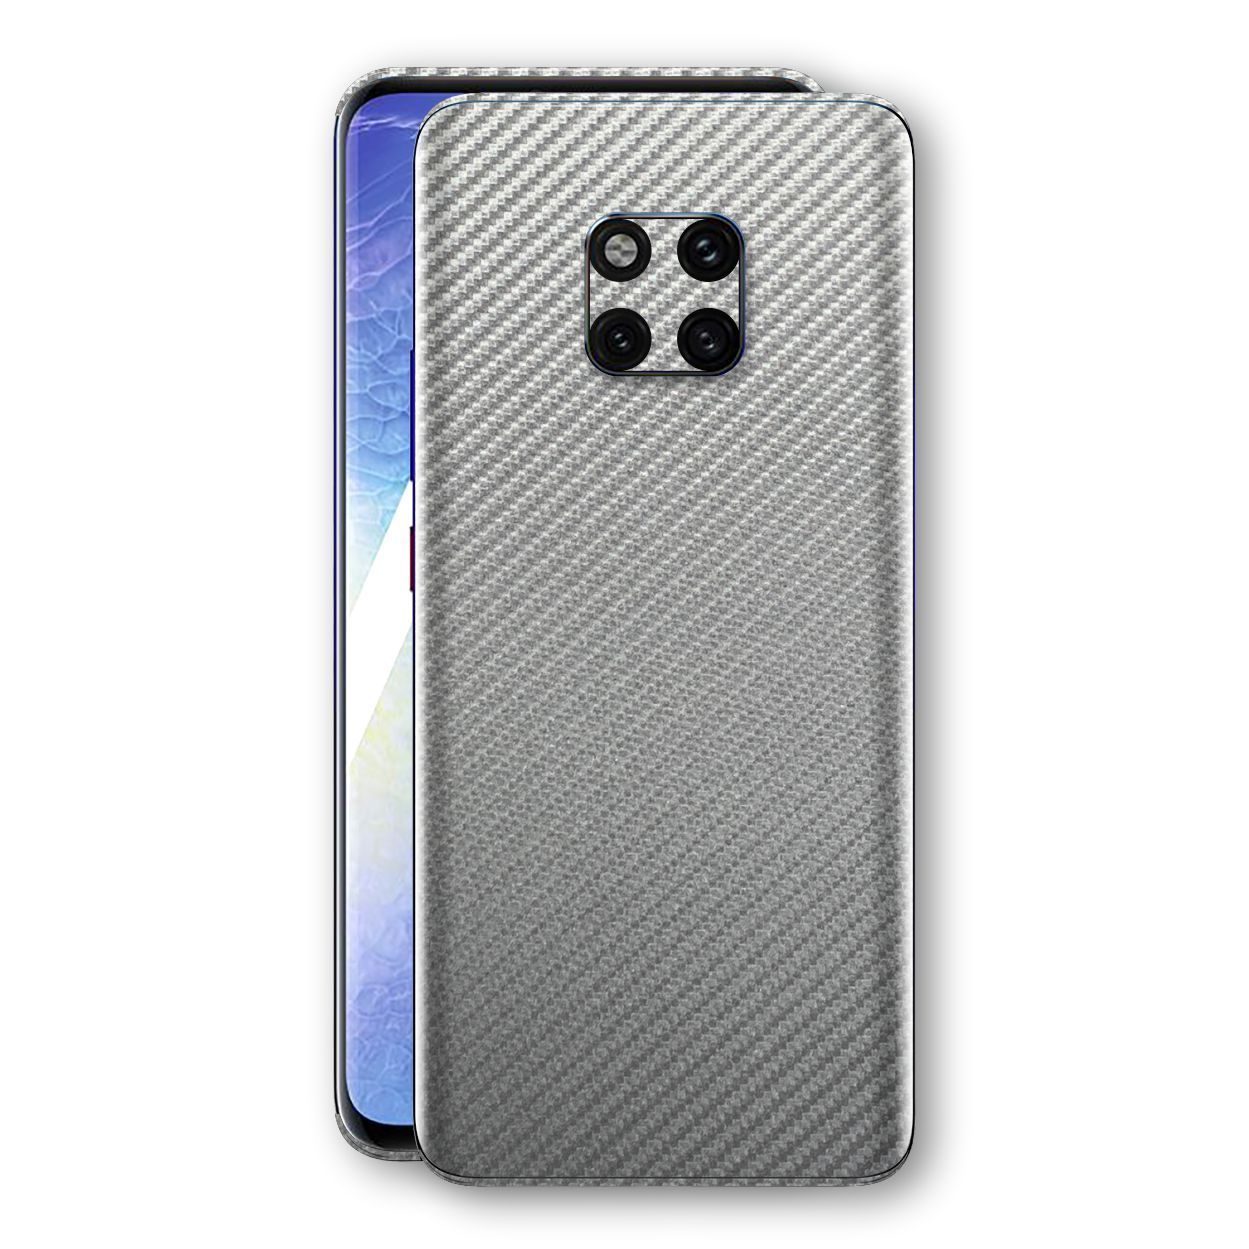 Huawei MATE 20 PRO 3D Textured Metallic Grey Carbon Fibre Fiber Skin, Decal, Wrap, Protector, Cover by EasySkinz | EasySkinz.com